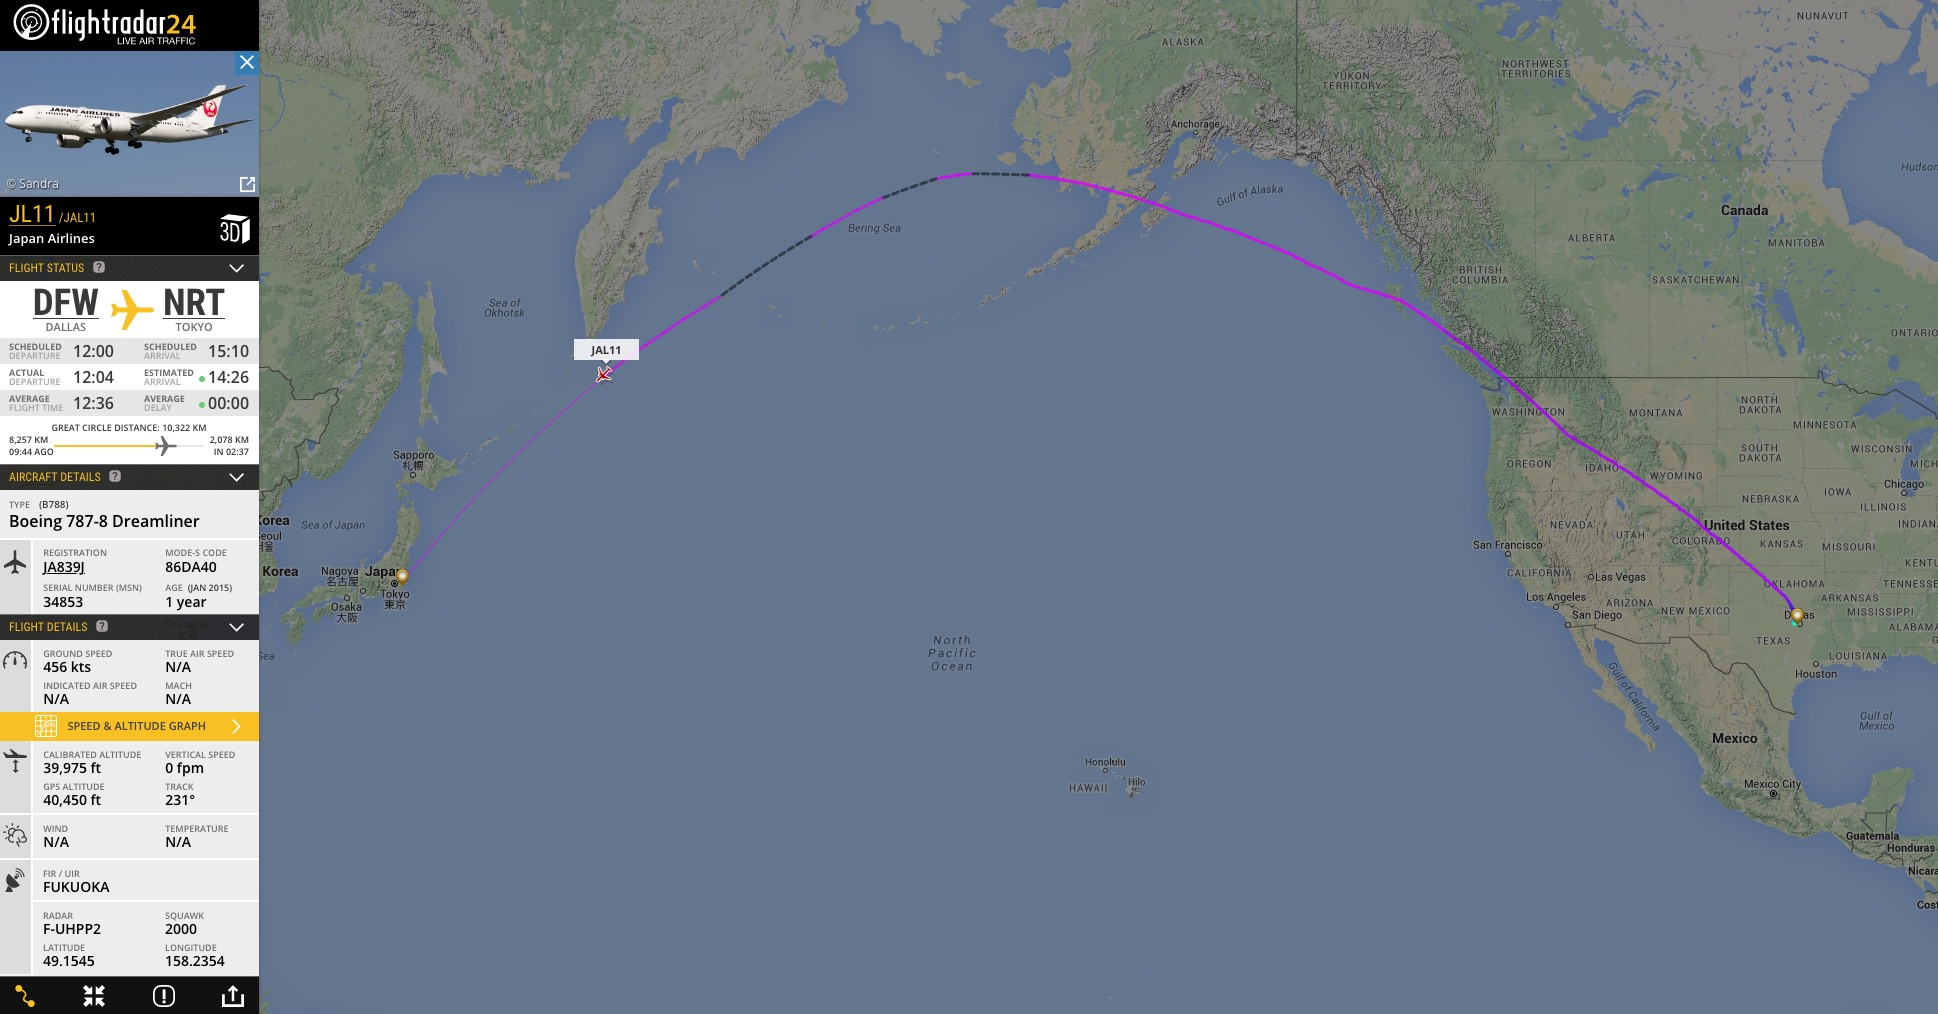 Estimated positions on this Japan Airlines flight from Dallas to Tokyo are noted by the black dashed lines